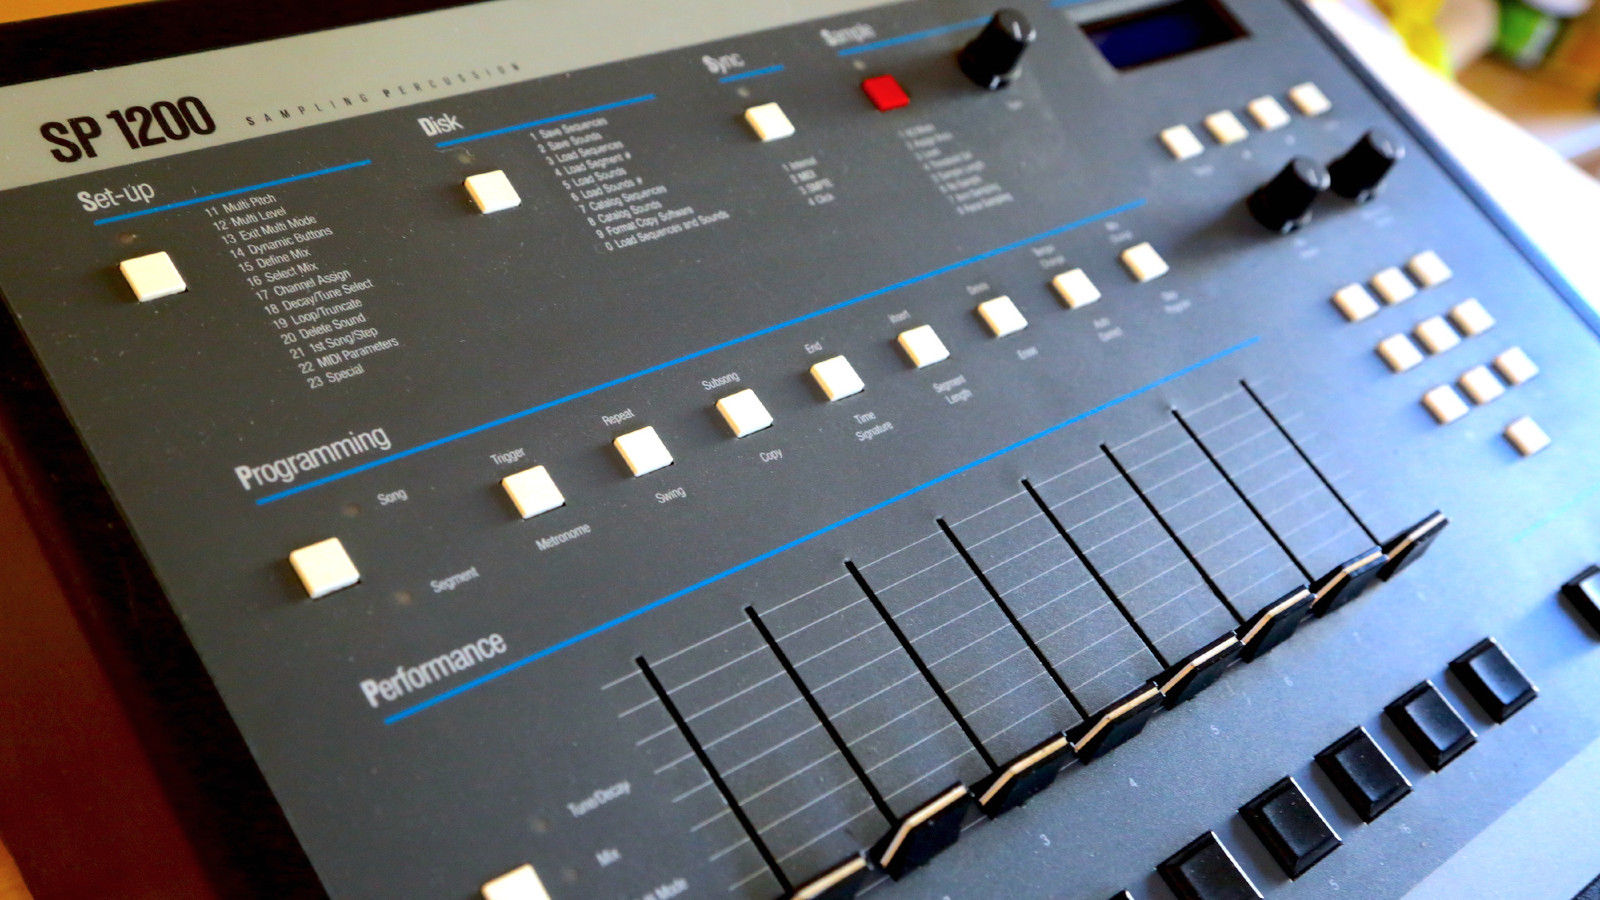 sp1200 drum machine